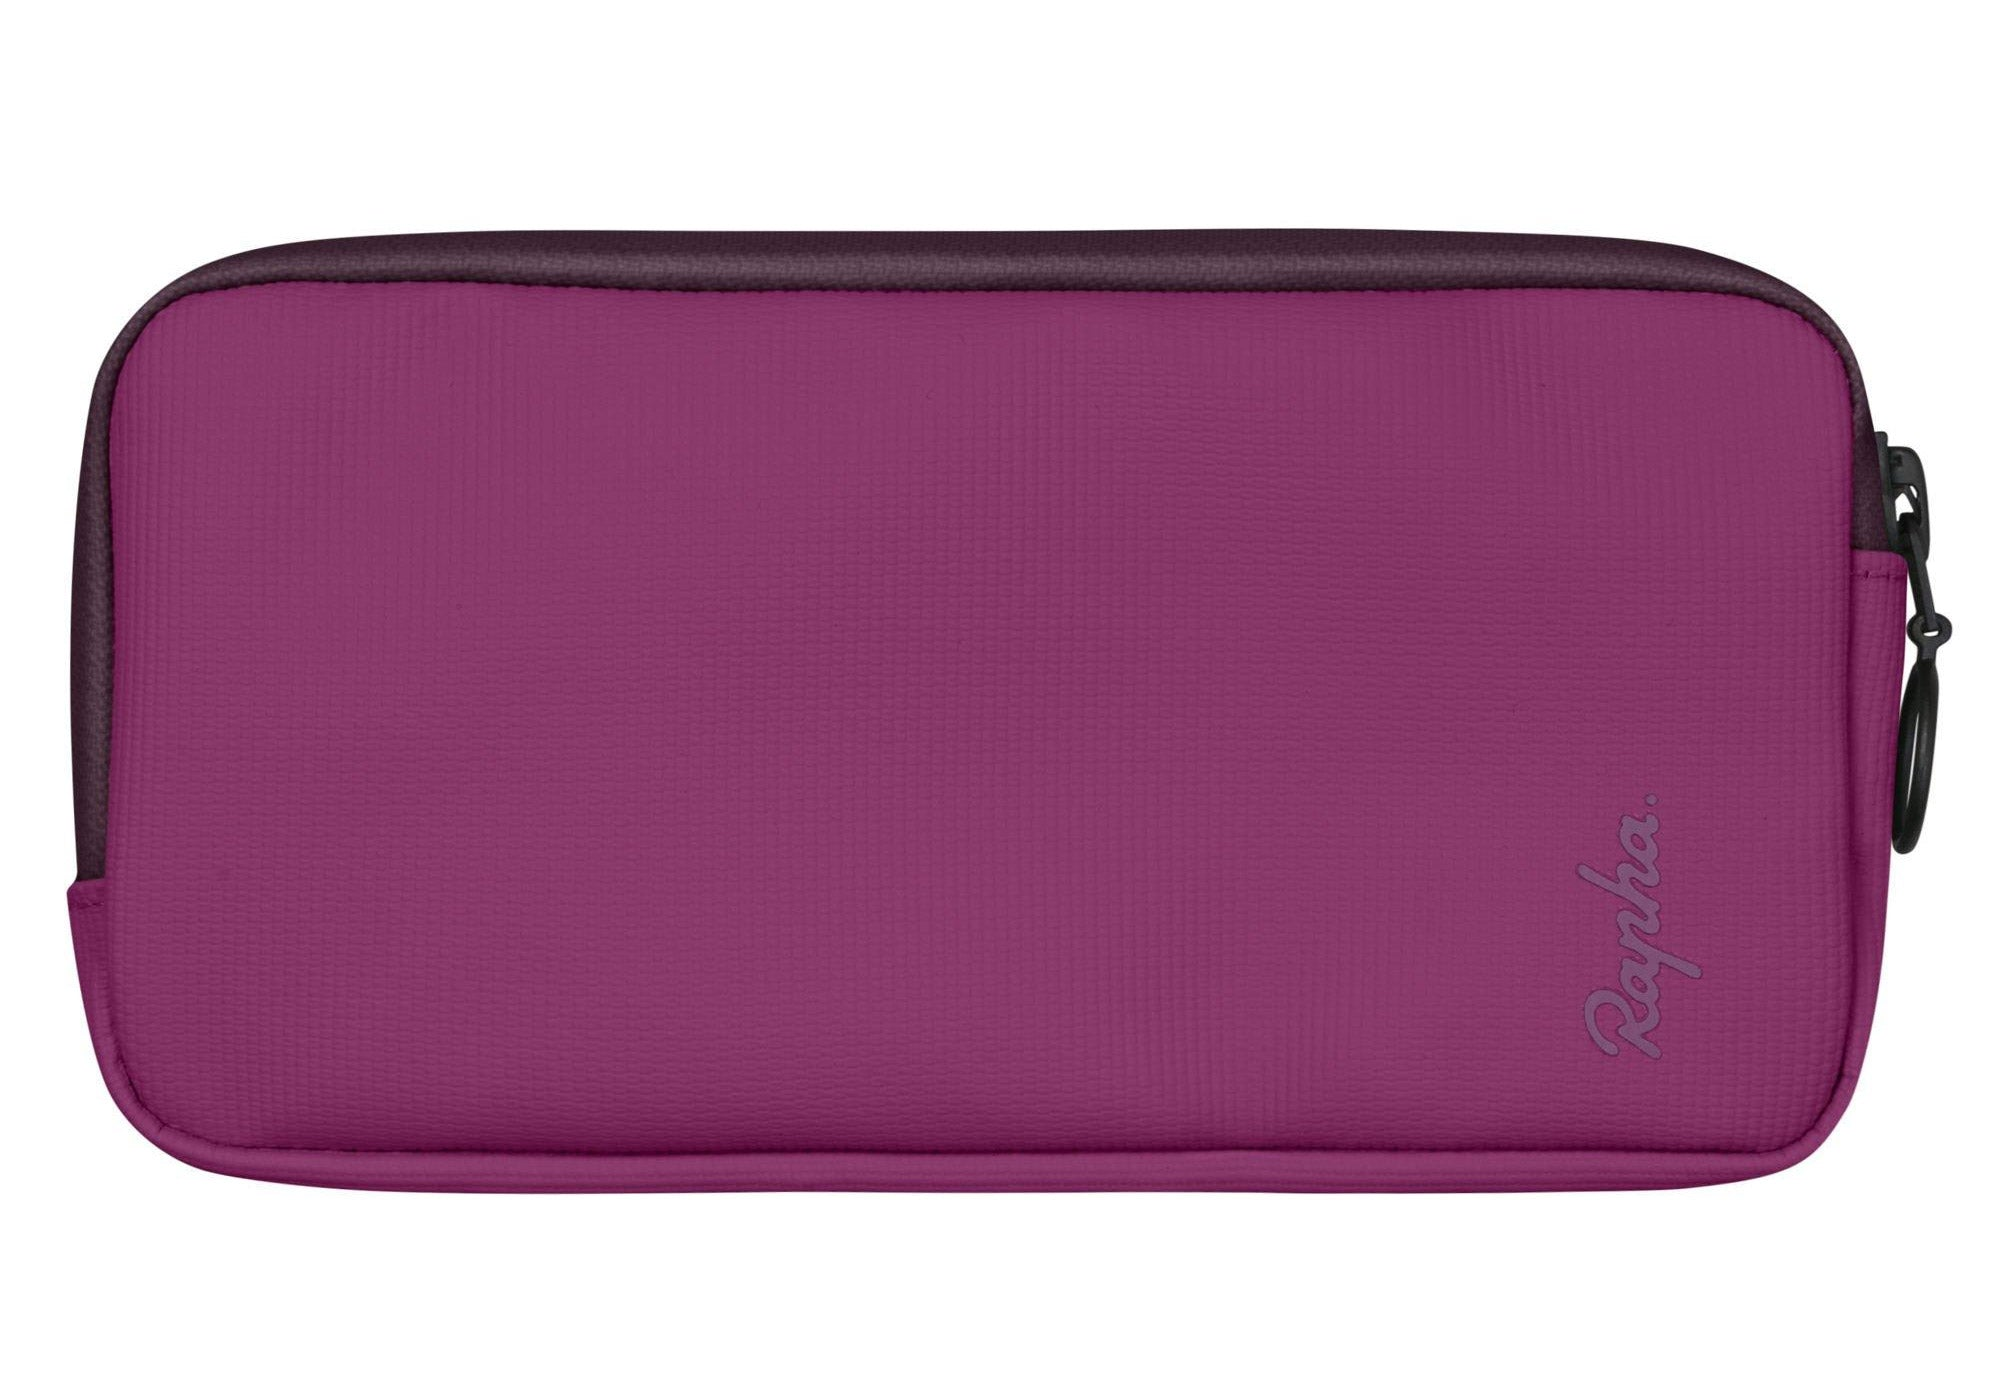 Rapha Rainproof Essentials Case - Large, Purple Woolys Wheels Sydney